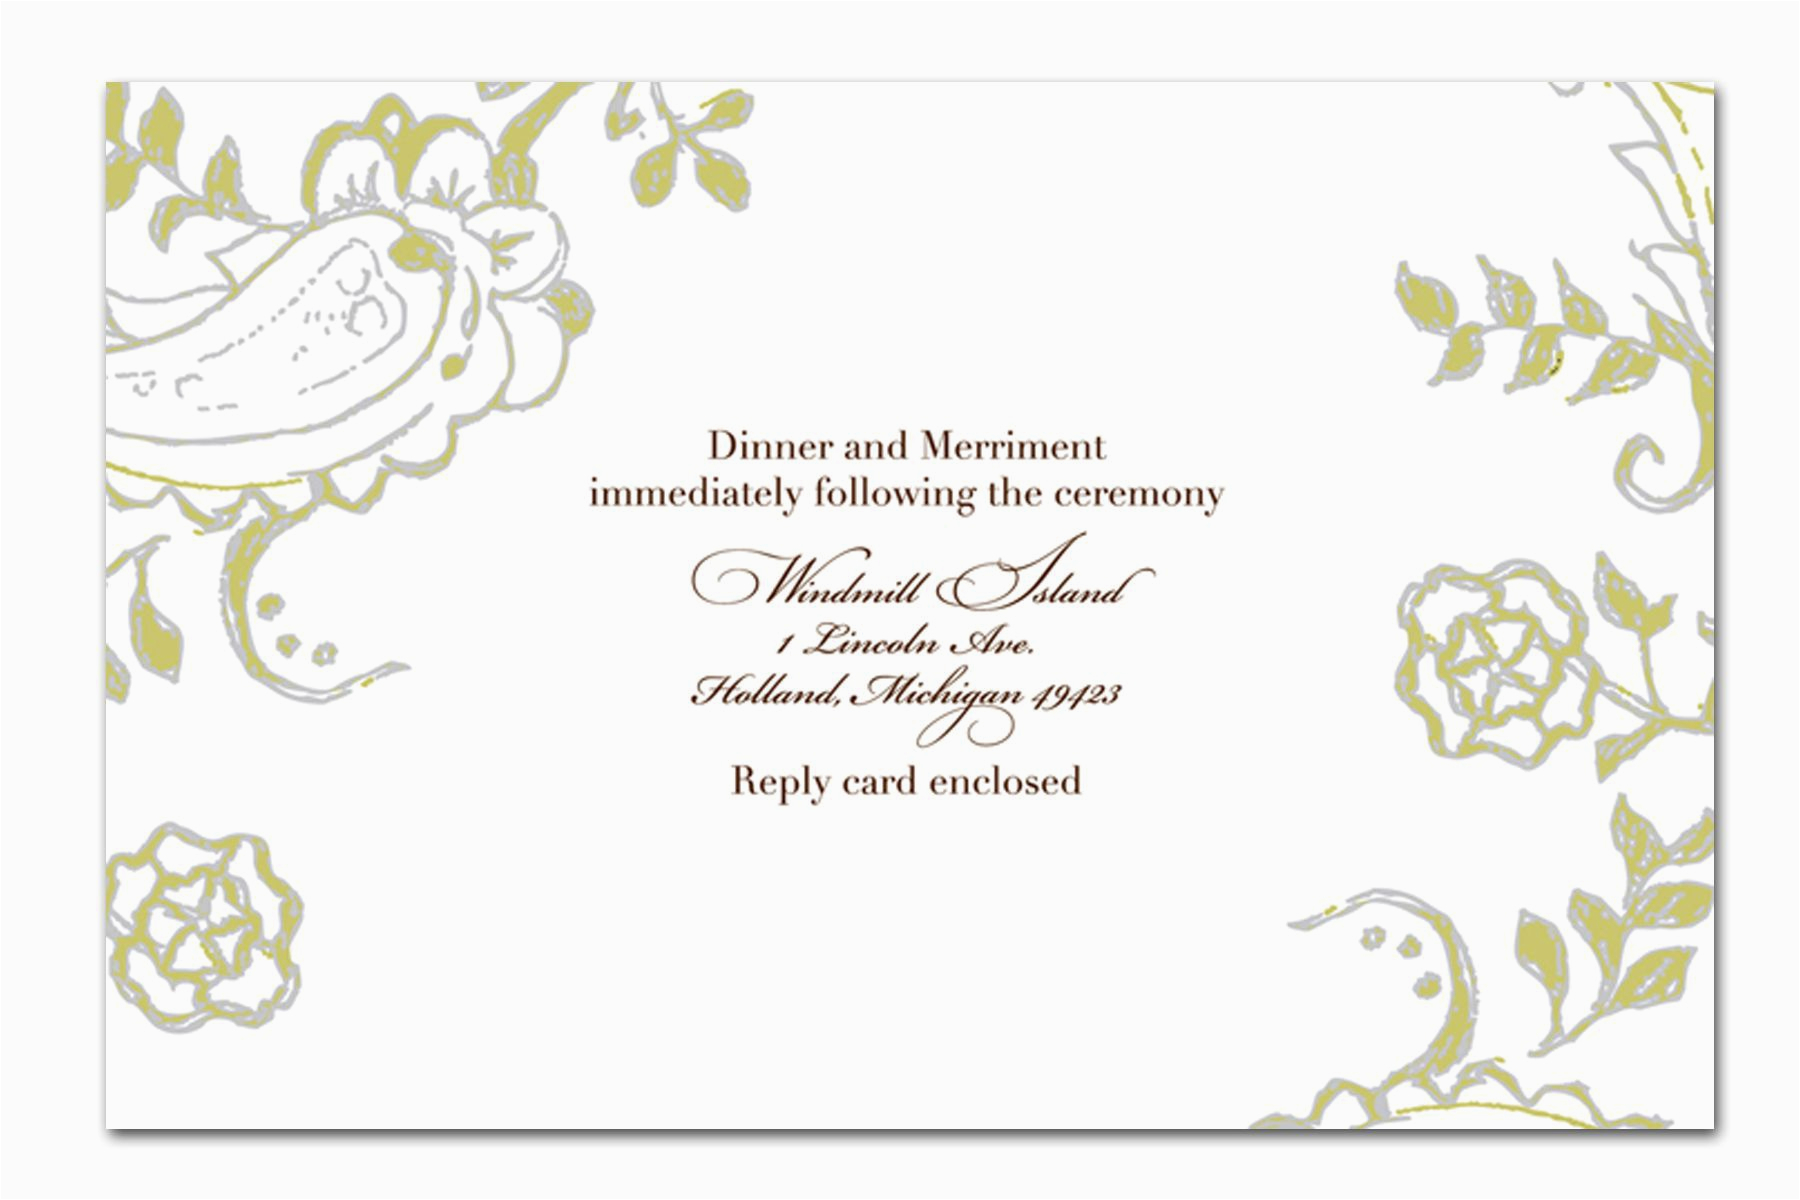 Wedding Invitation Card Design Online Free